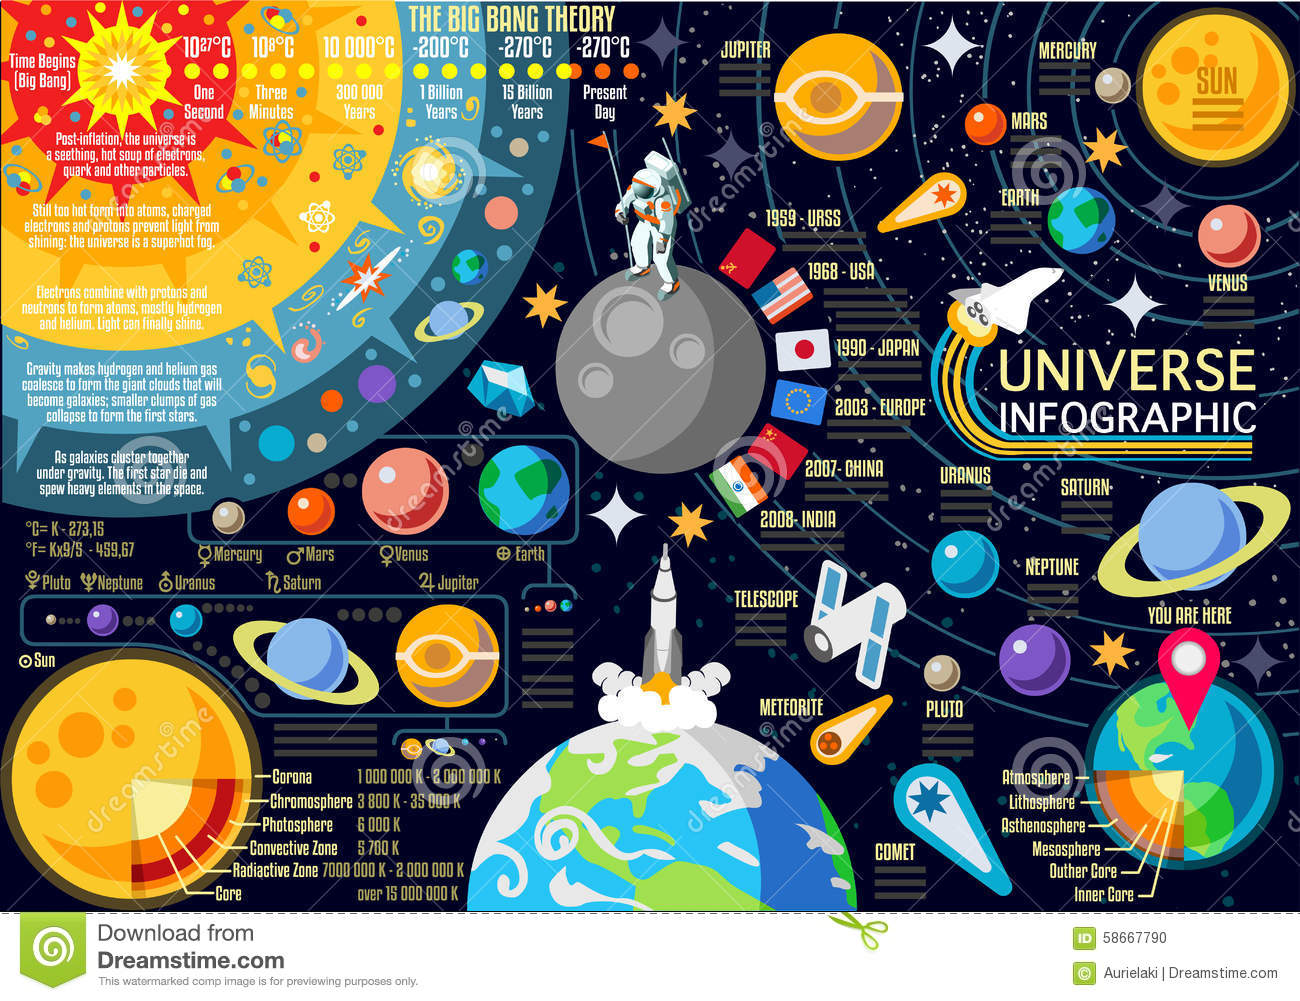 pluto map with Stock Illustration Universe Concept Isometric New Horizons Solar System Infographic New Bright Palette D Flat Vector Icon Set Pla S Pluto Venus Image58667790 on 8381974959 besides Moonmap together with 5989548785 besides Study Abroad in addition Stock Photo An Illustration Of The Pla s Of Our Solar System With Text Name 85087775.